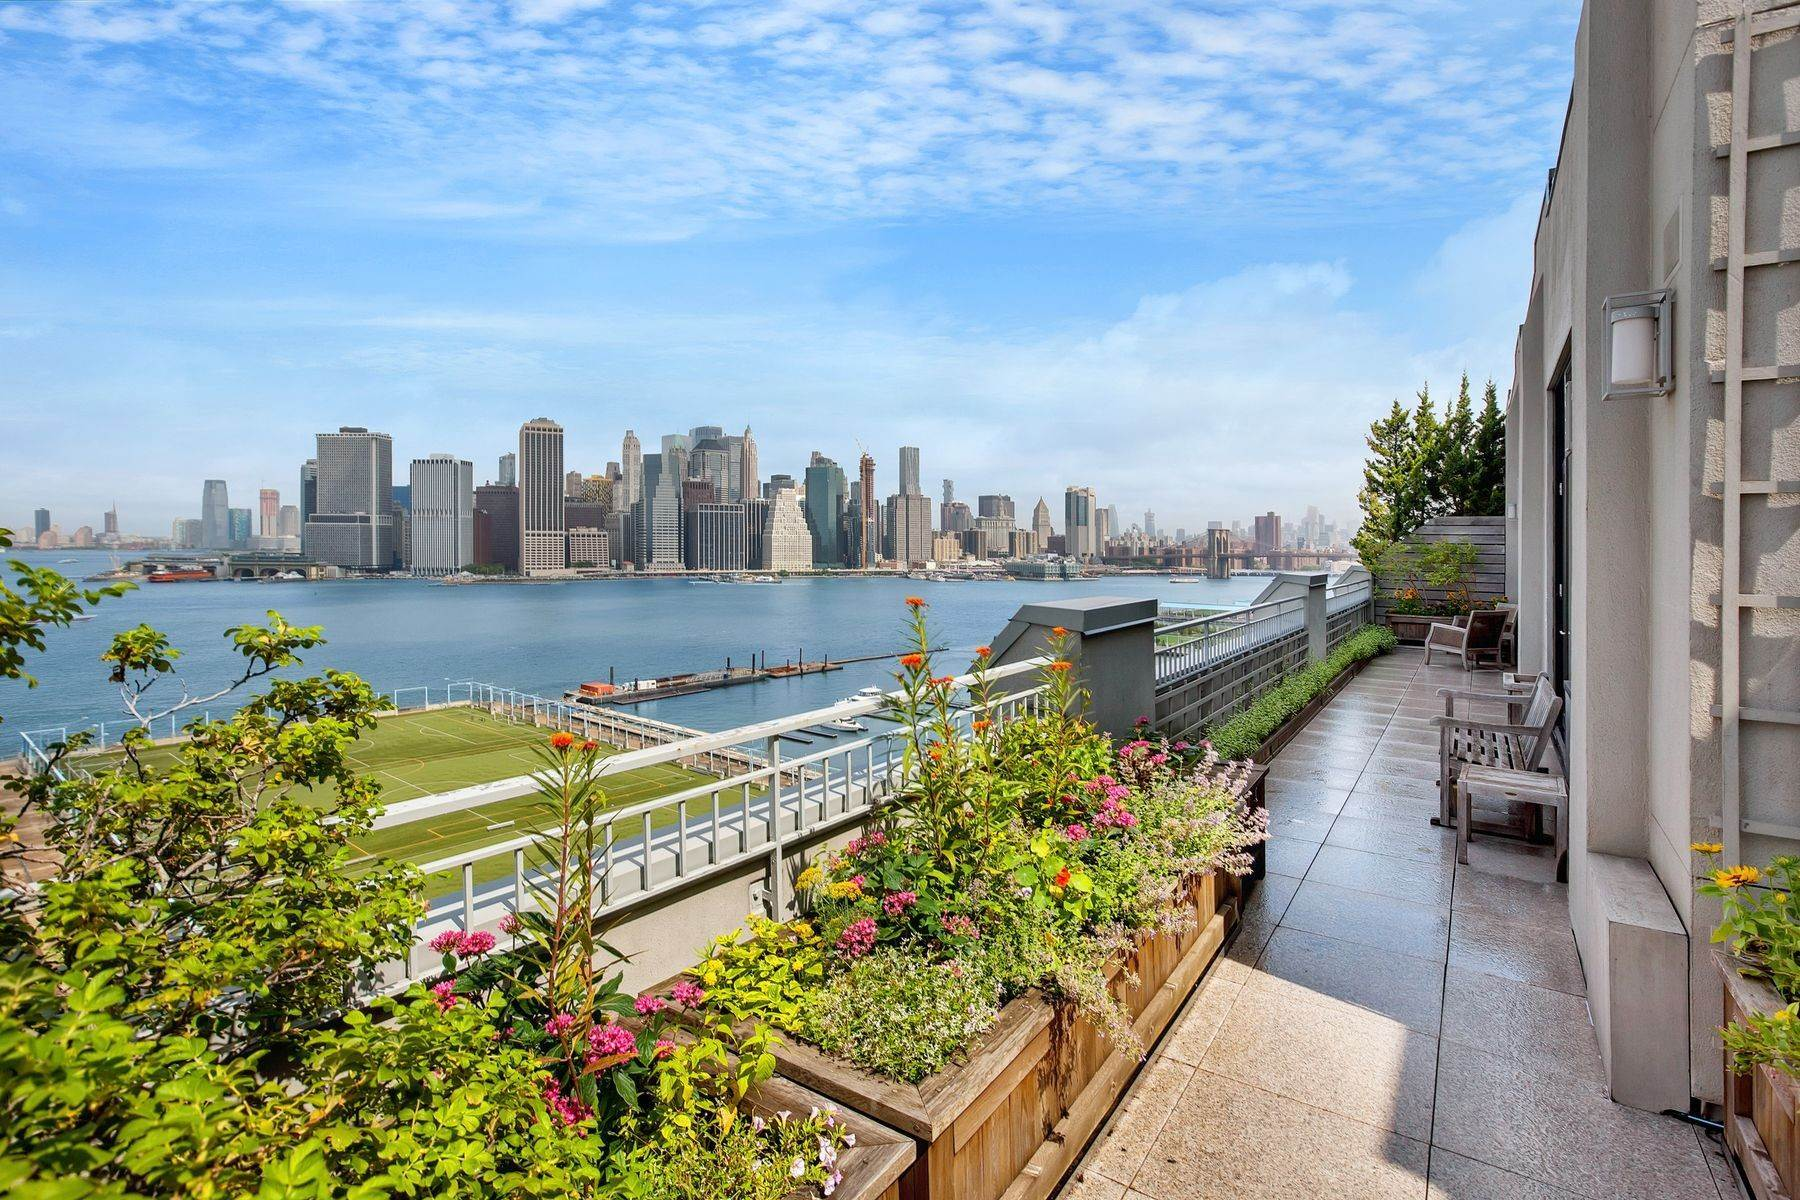 Condominiums for Sale at Townhouse in the Sky with Amenities 360 Furman Street, Apt 1216 Brooklyn, New York 11201 United States